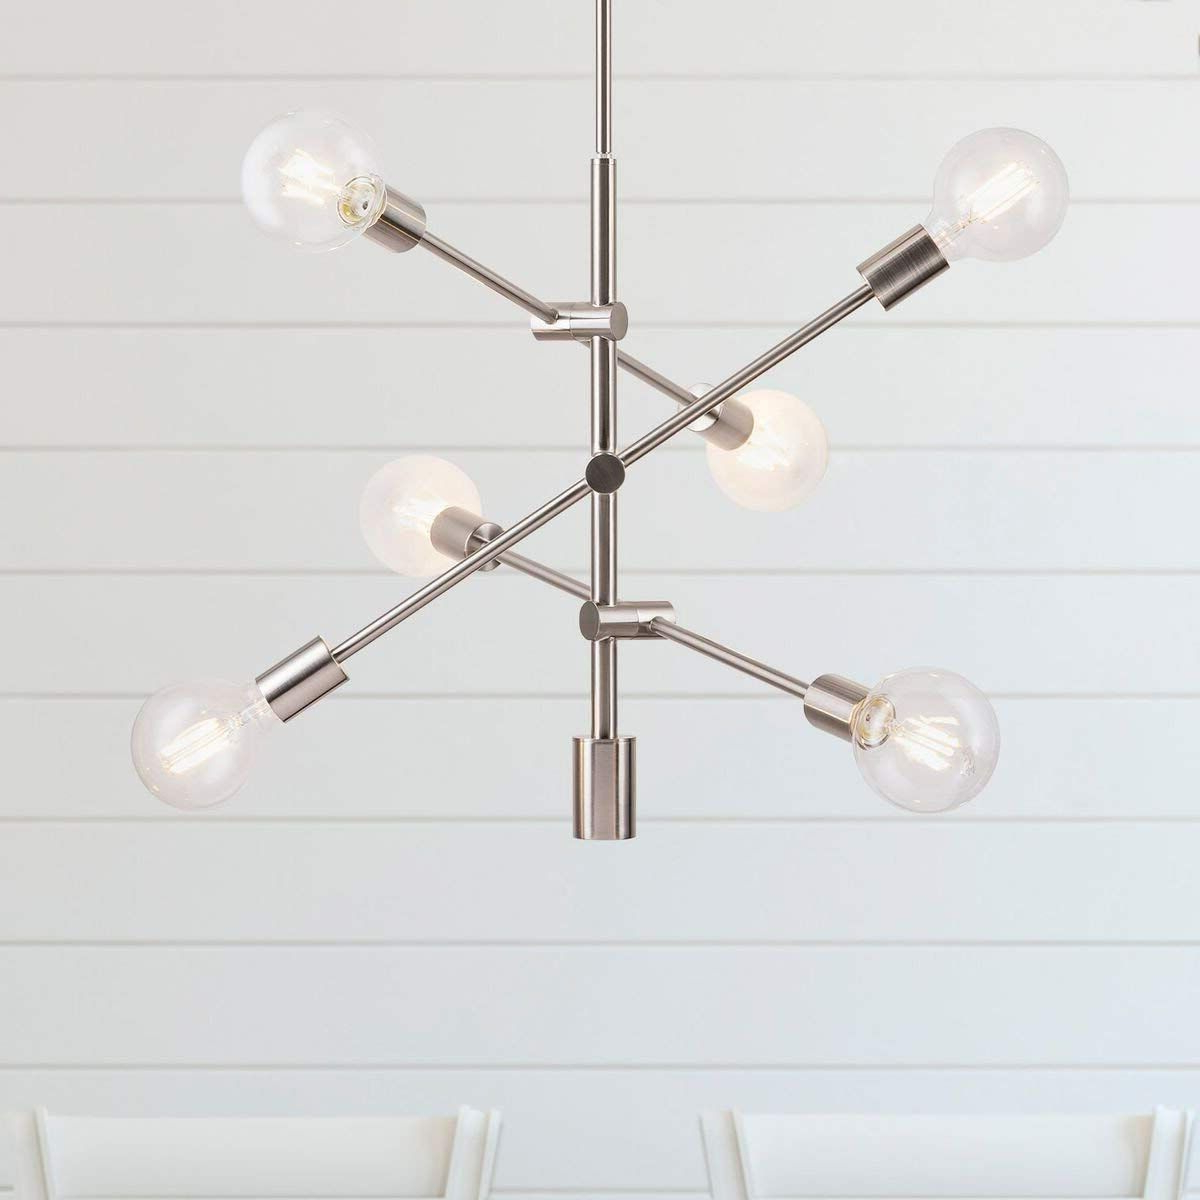 Newest Eladia 6 Light Sputnik Chandeliers For Marabella Led Sputnik Chandelier Light Fixture, Brushed (Gallery 17 of 20)